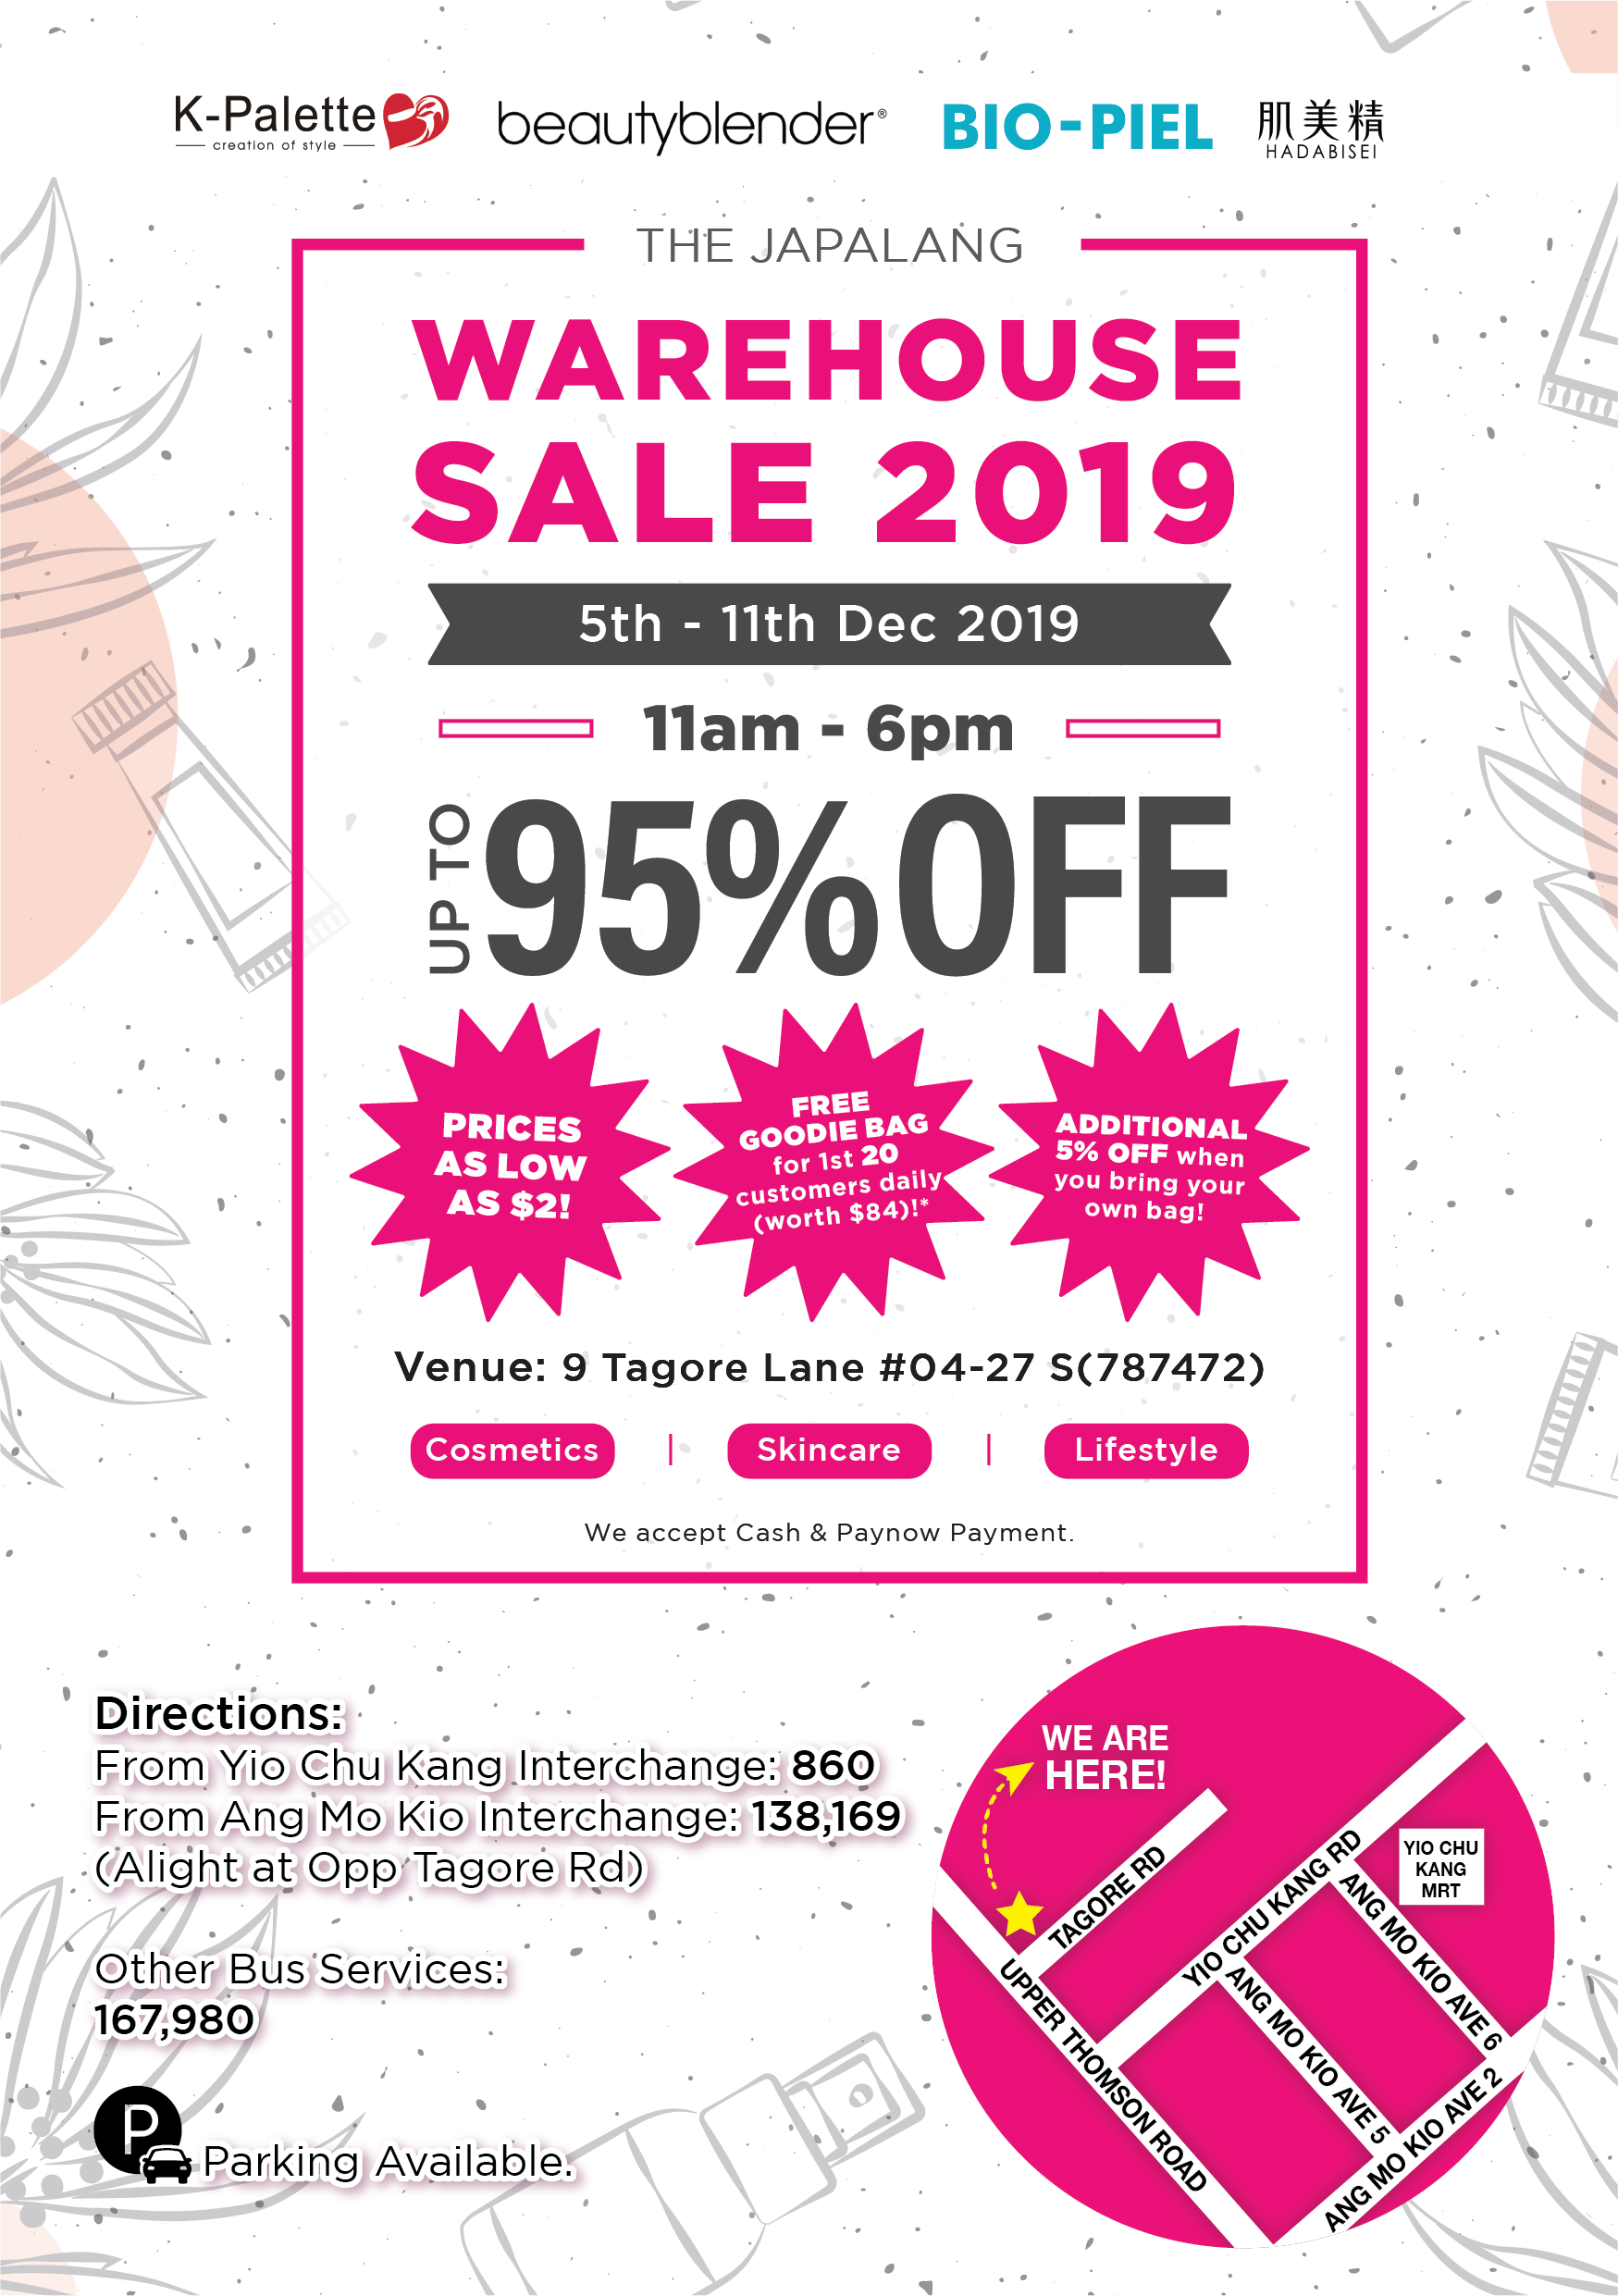 The Japalang Warehouse Sale SG is back with Up to 95% Off Promotion 5-11 Dec 2019 | Why Not Deals 1 & Promotions